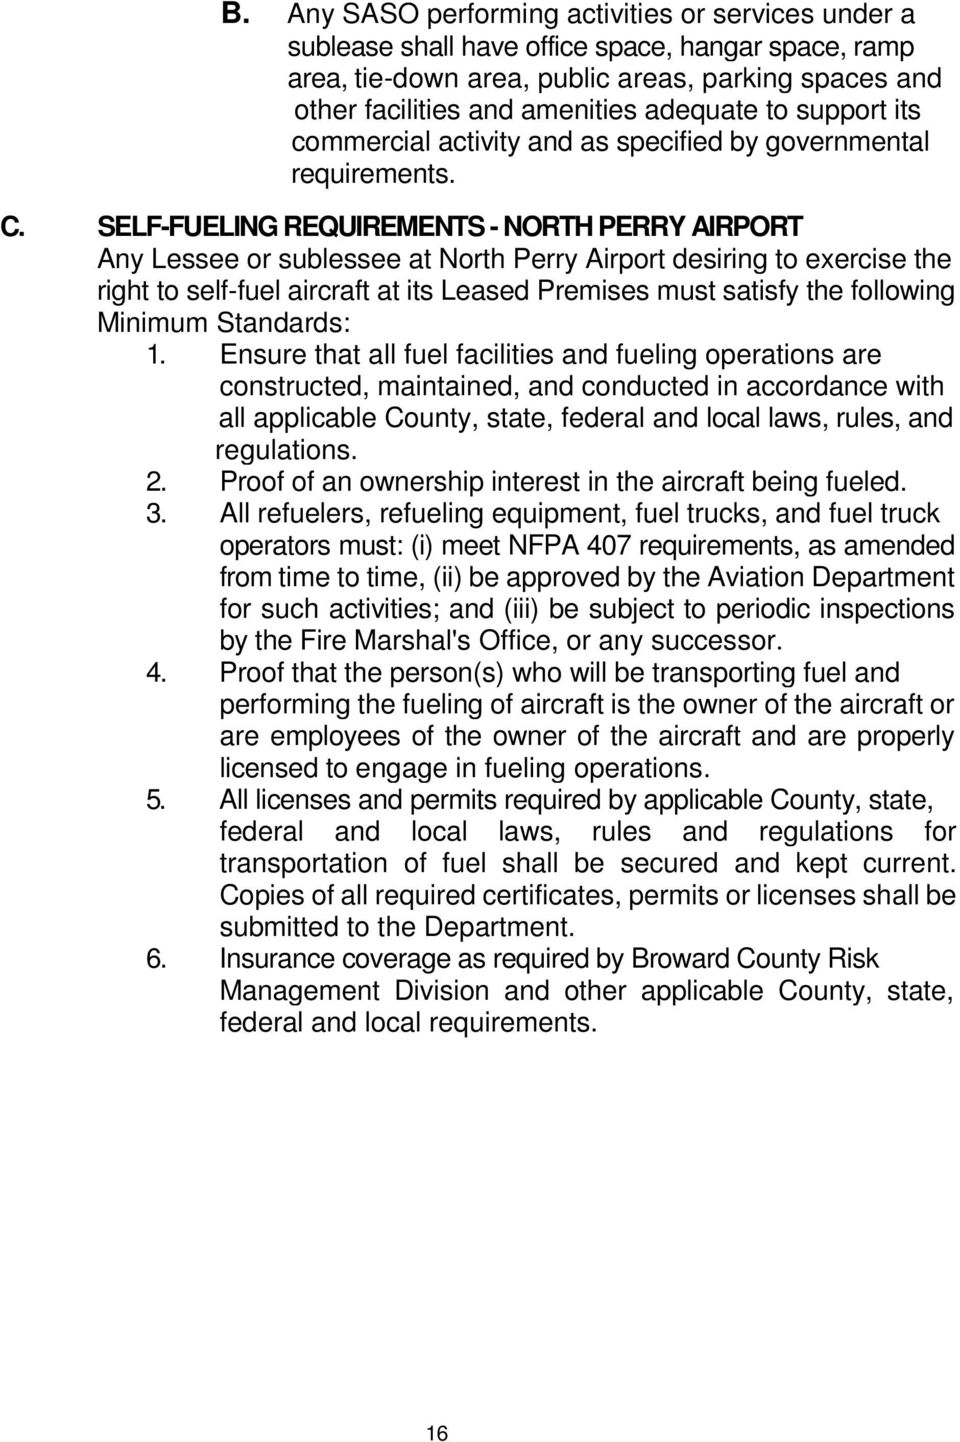 SELF-FUELING REQUIREMENTS - NORTH PERRY AIRPORT Any Lessee or sublessee at North Perry Airport desiring to exercise the right to self-fuel aircraft at its Leased Premises must satisfy the following